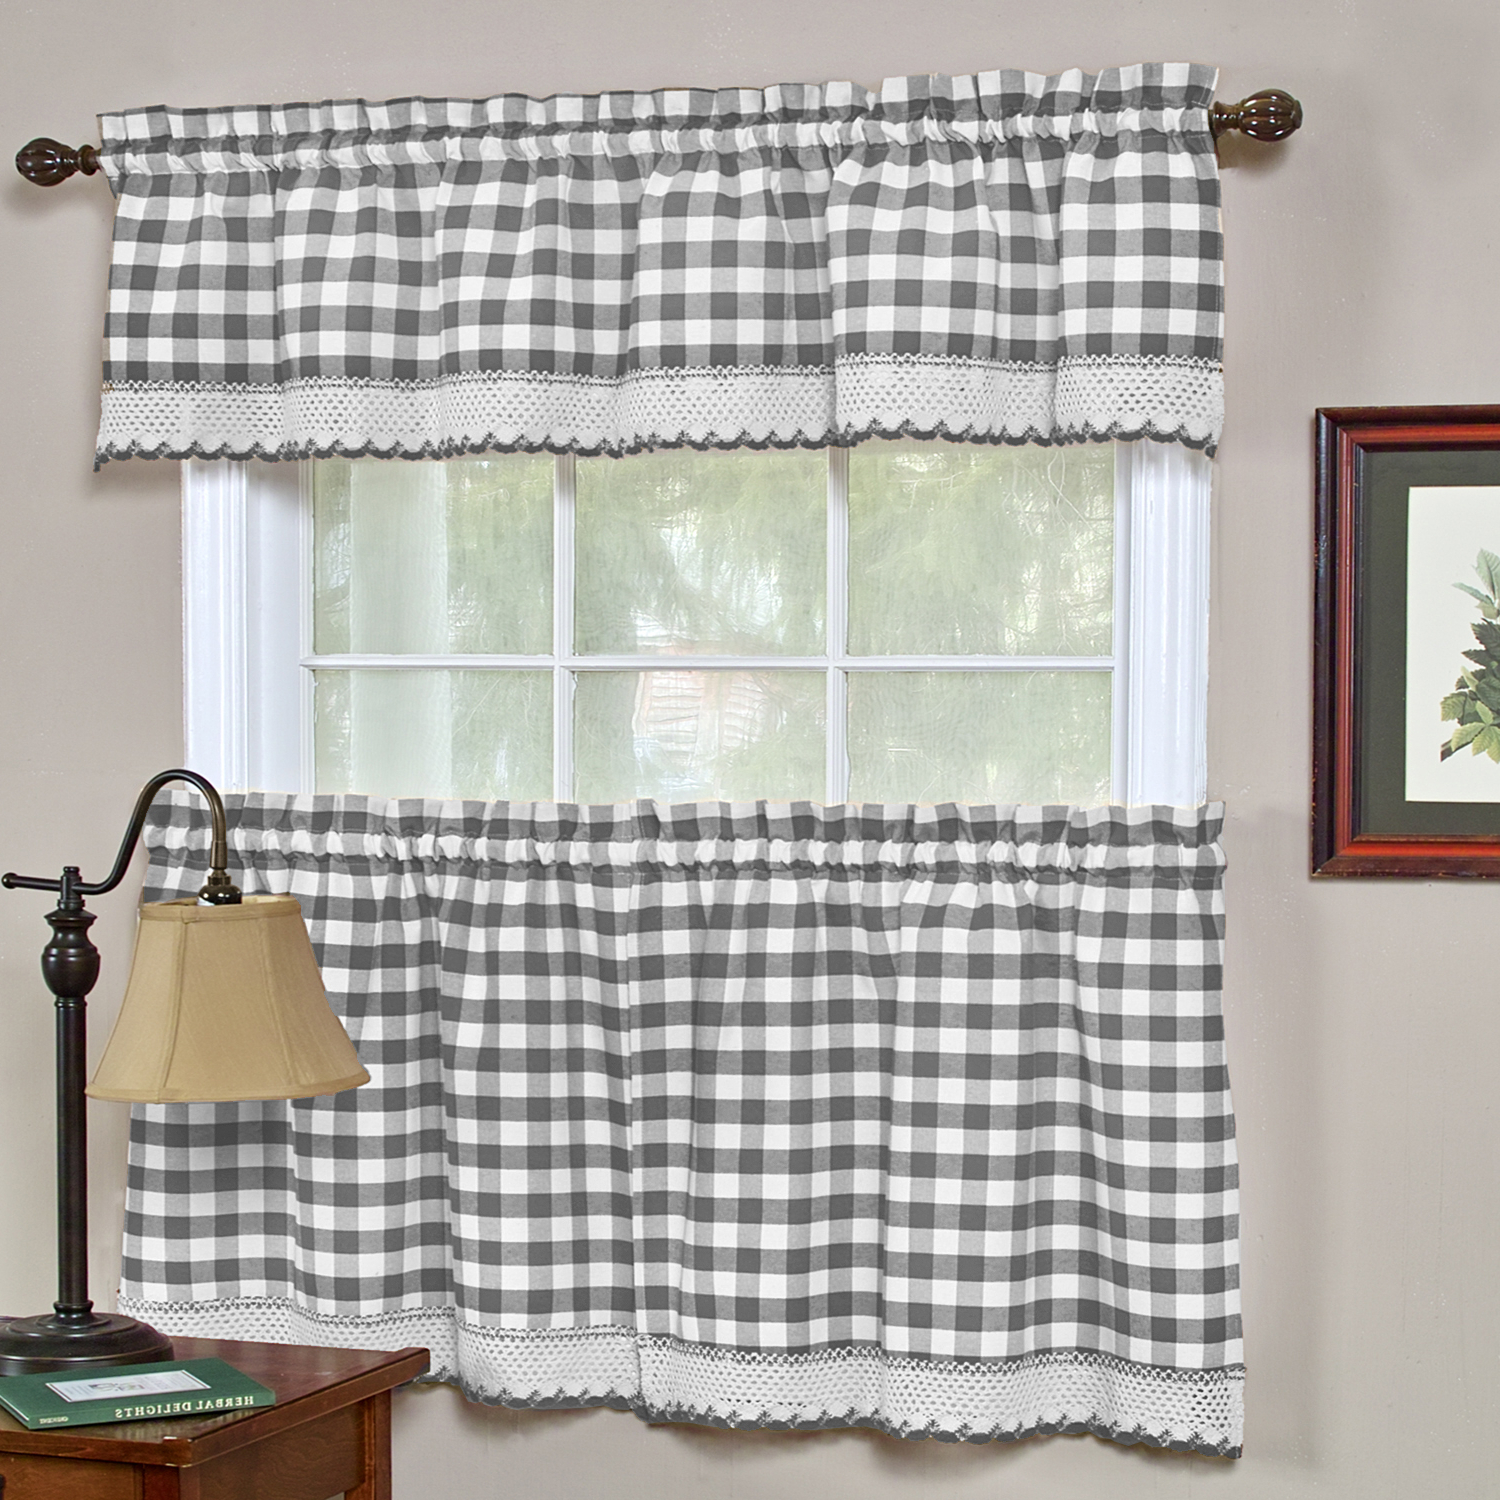 Trendy Cotton Blend Grey Kitchen Curtain Tiers Intended For Details About Buffalo Check Gingham Kitchen Curtains Tiers Or Valance – Gray (View 17 of 20)